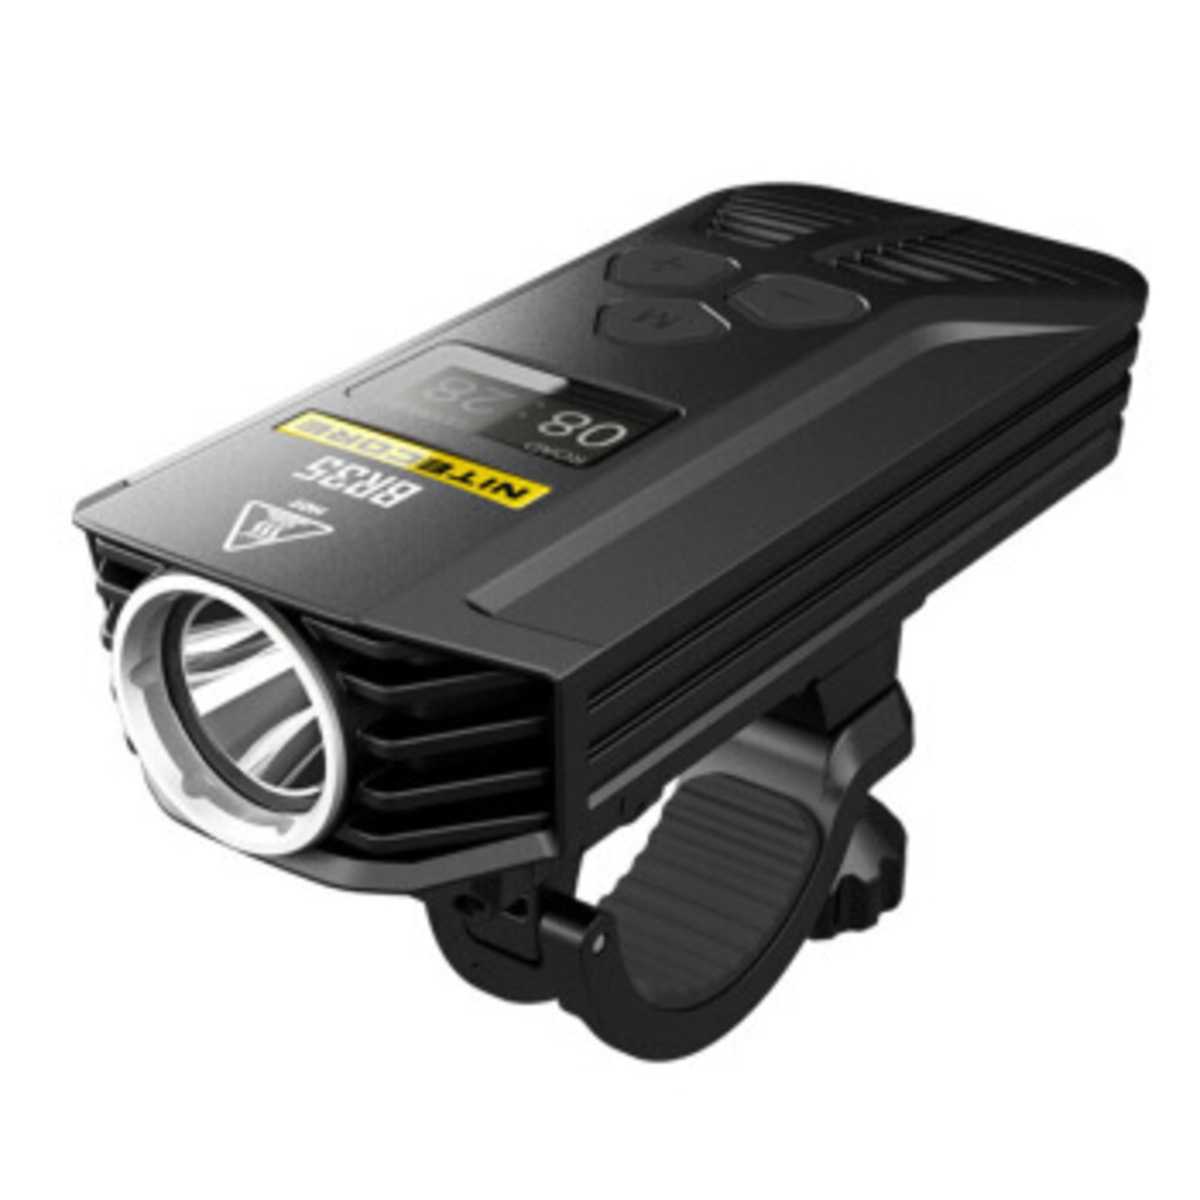 BR35 Dual LED 1800LM Bike Light USB Rechargeable HK Warranty